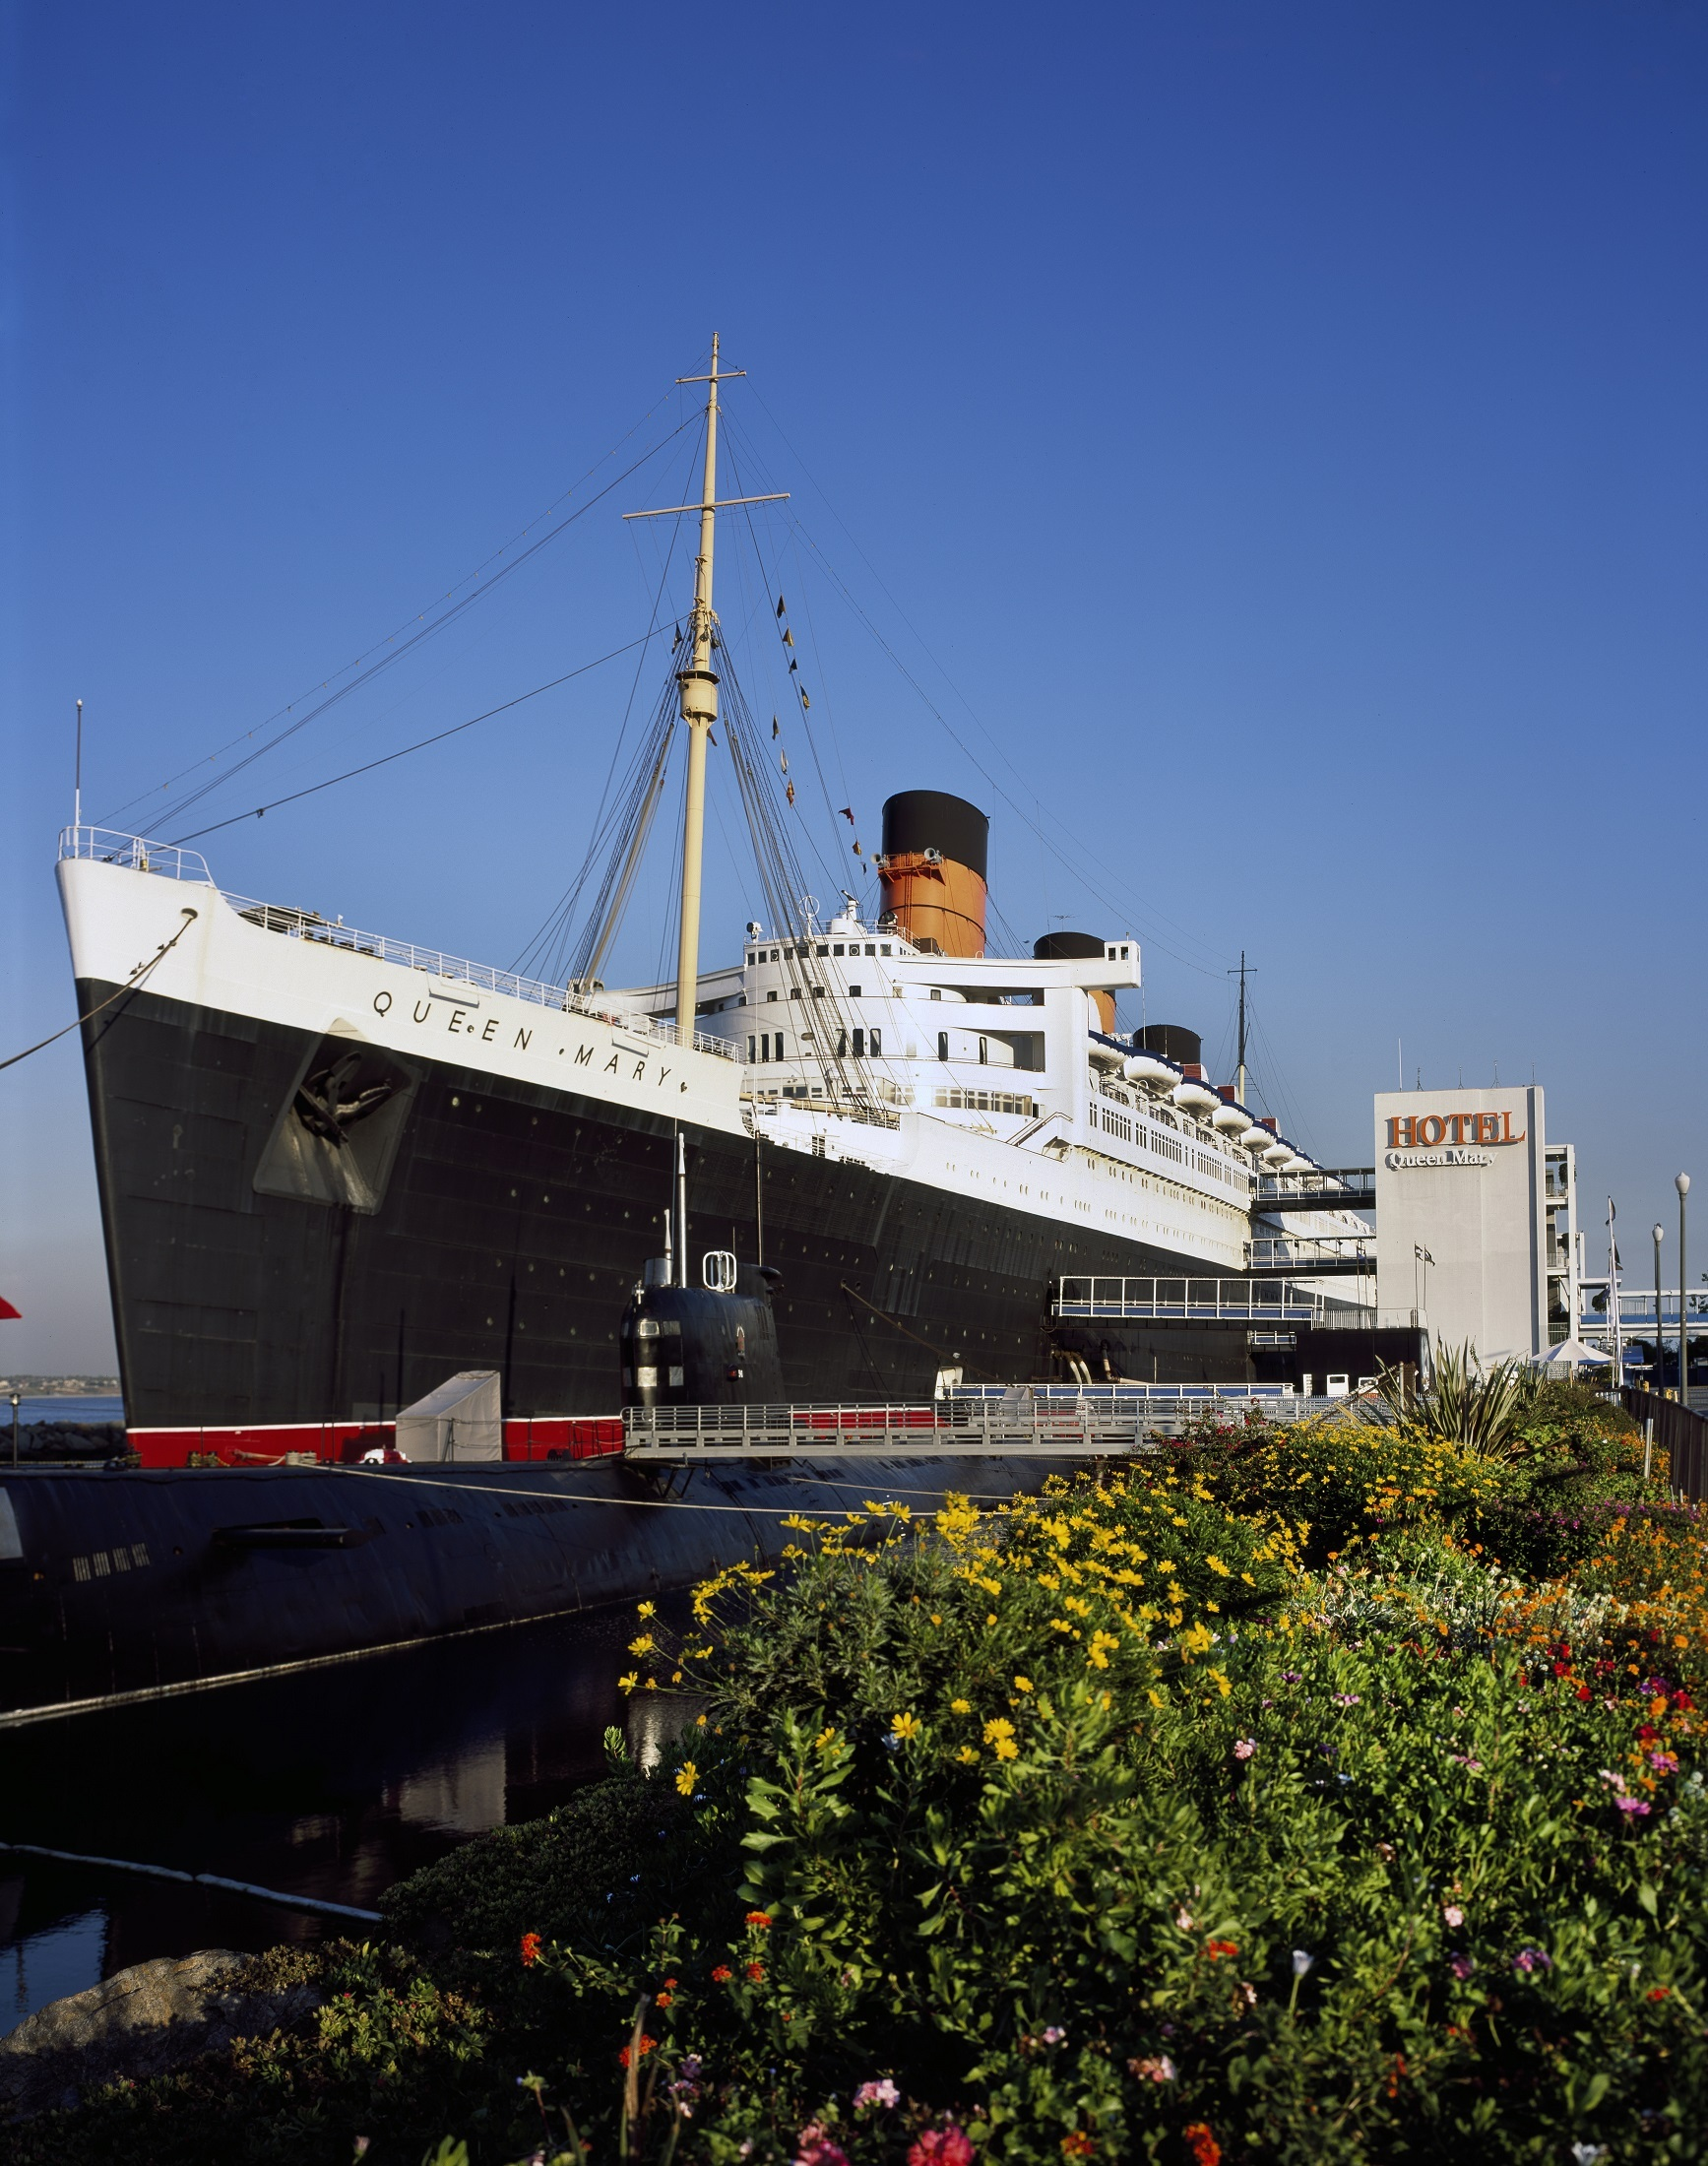 Rms Queen Mary, Ship, Travel, Mary, Journey, HQ Photo